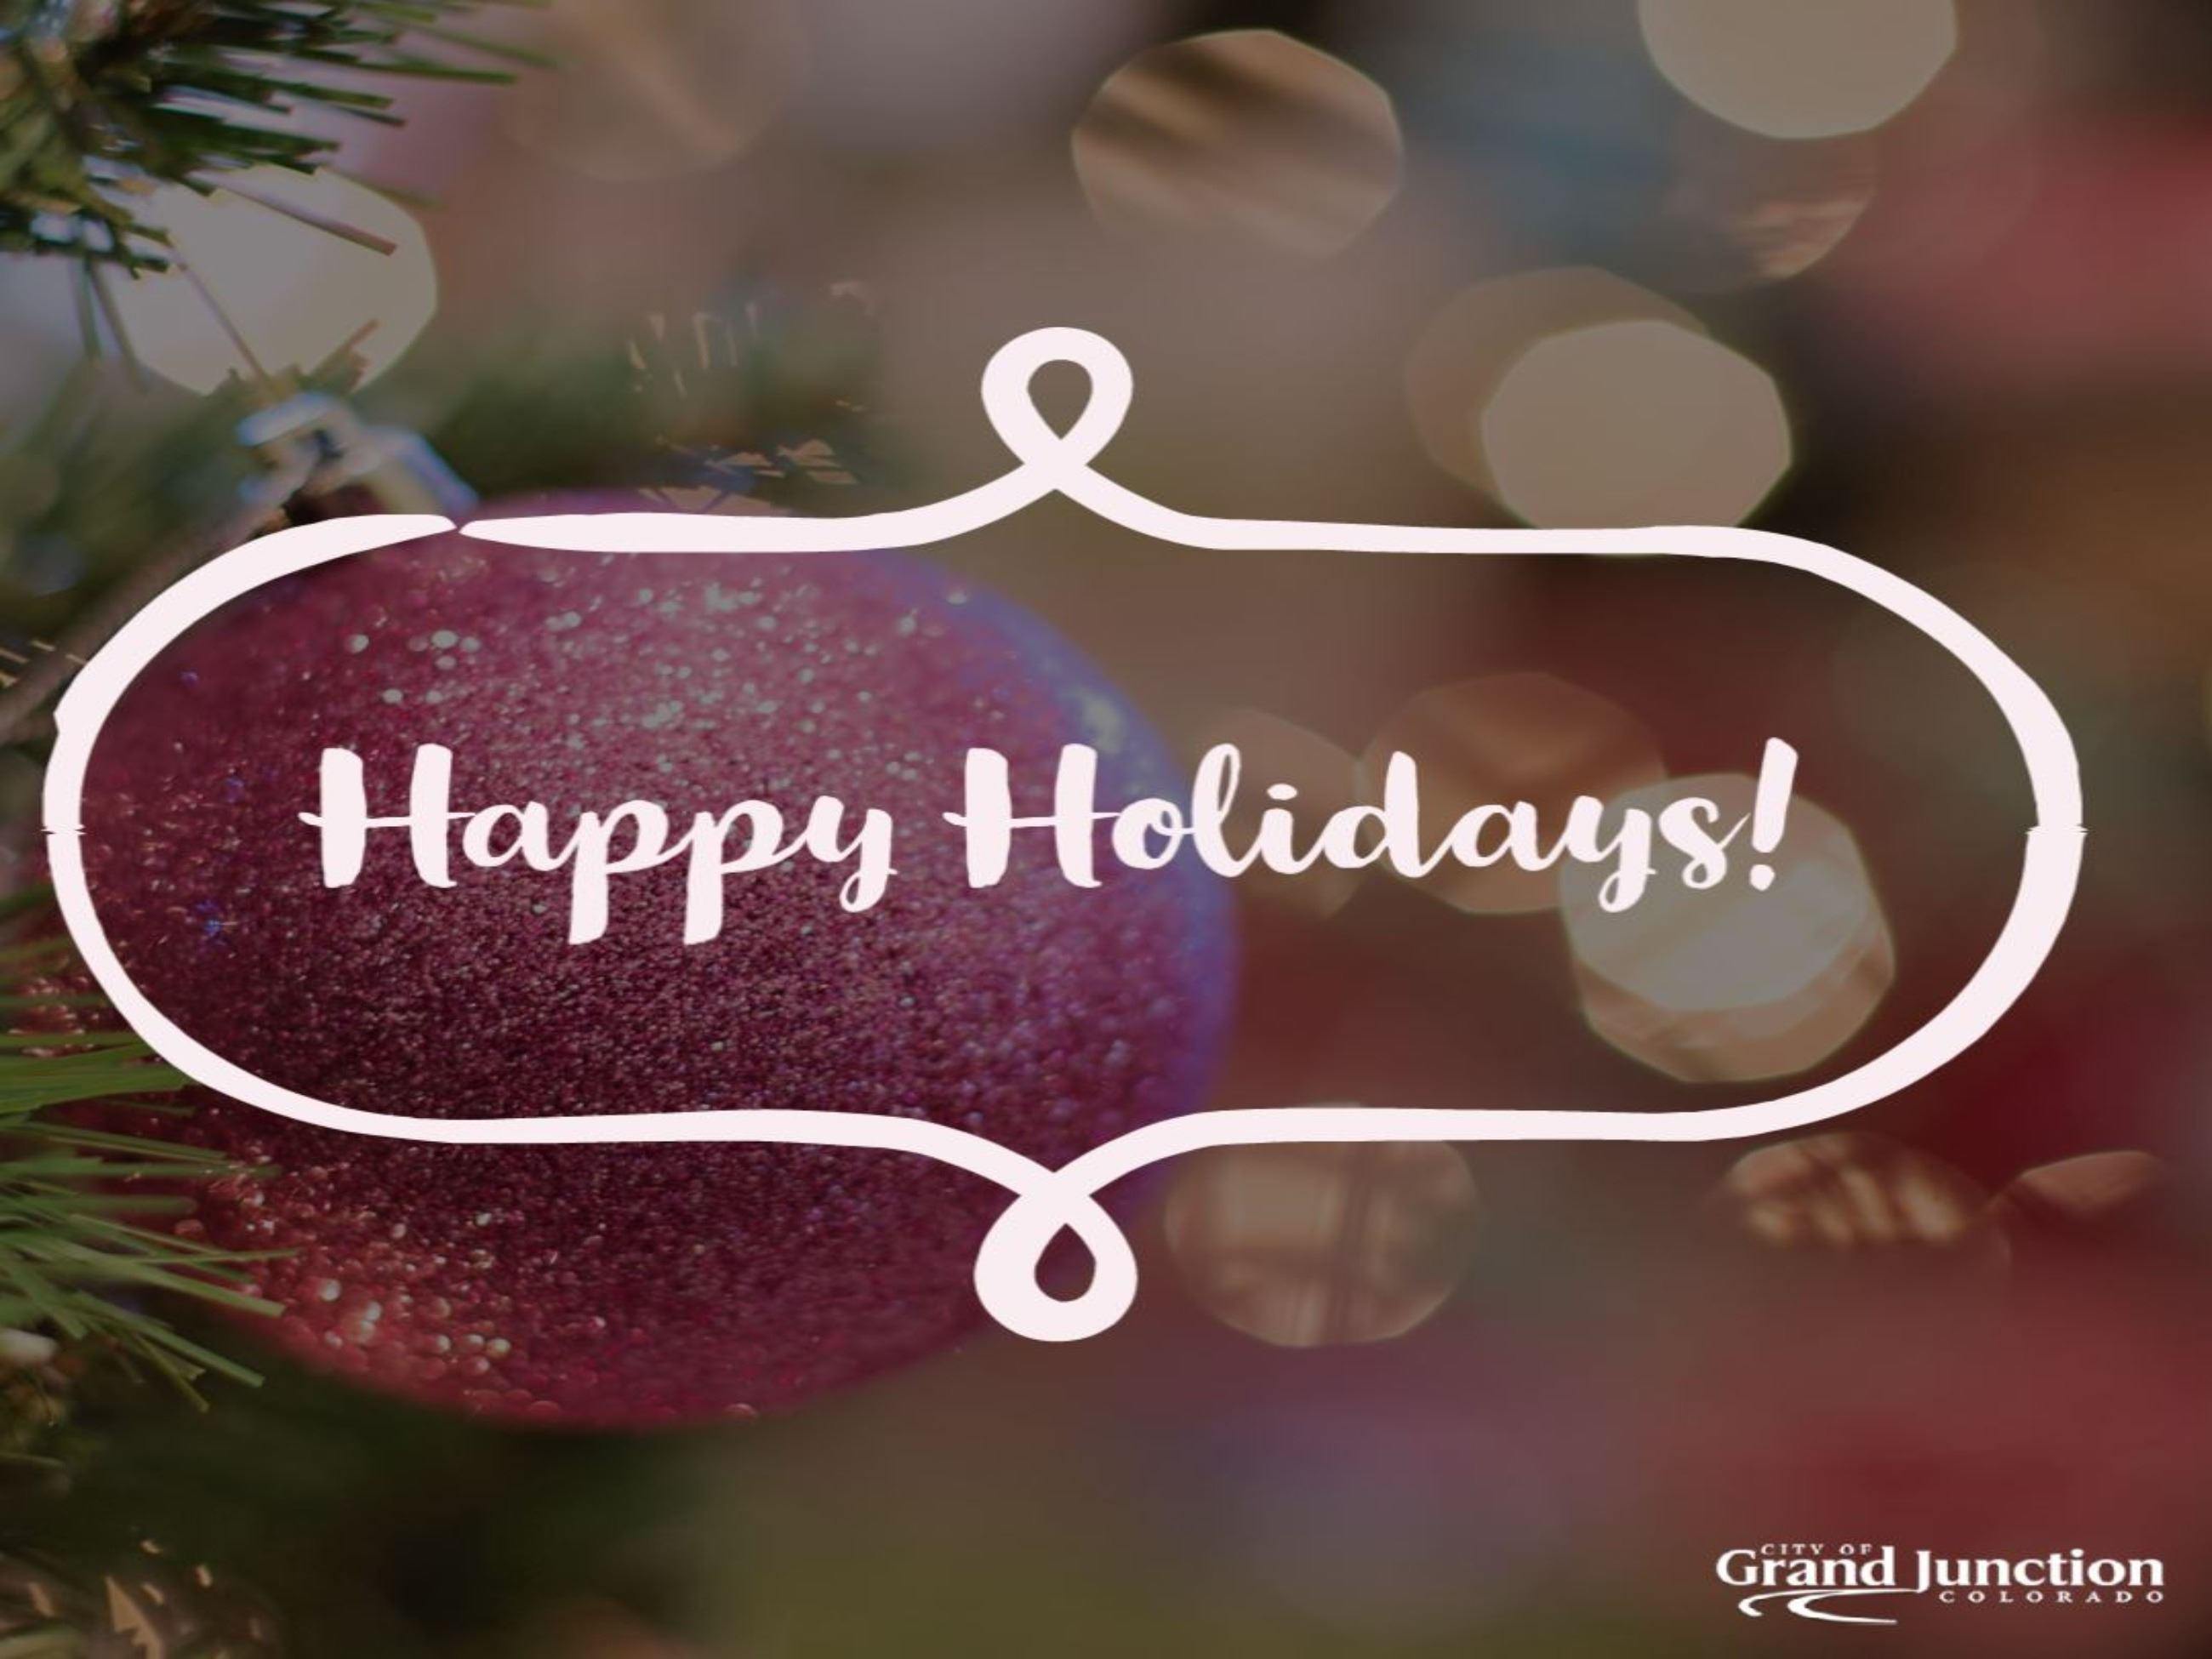 Happy Holidays graphic